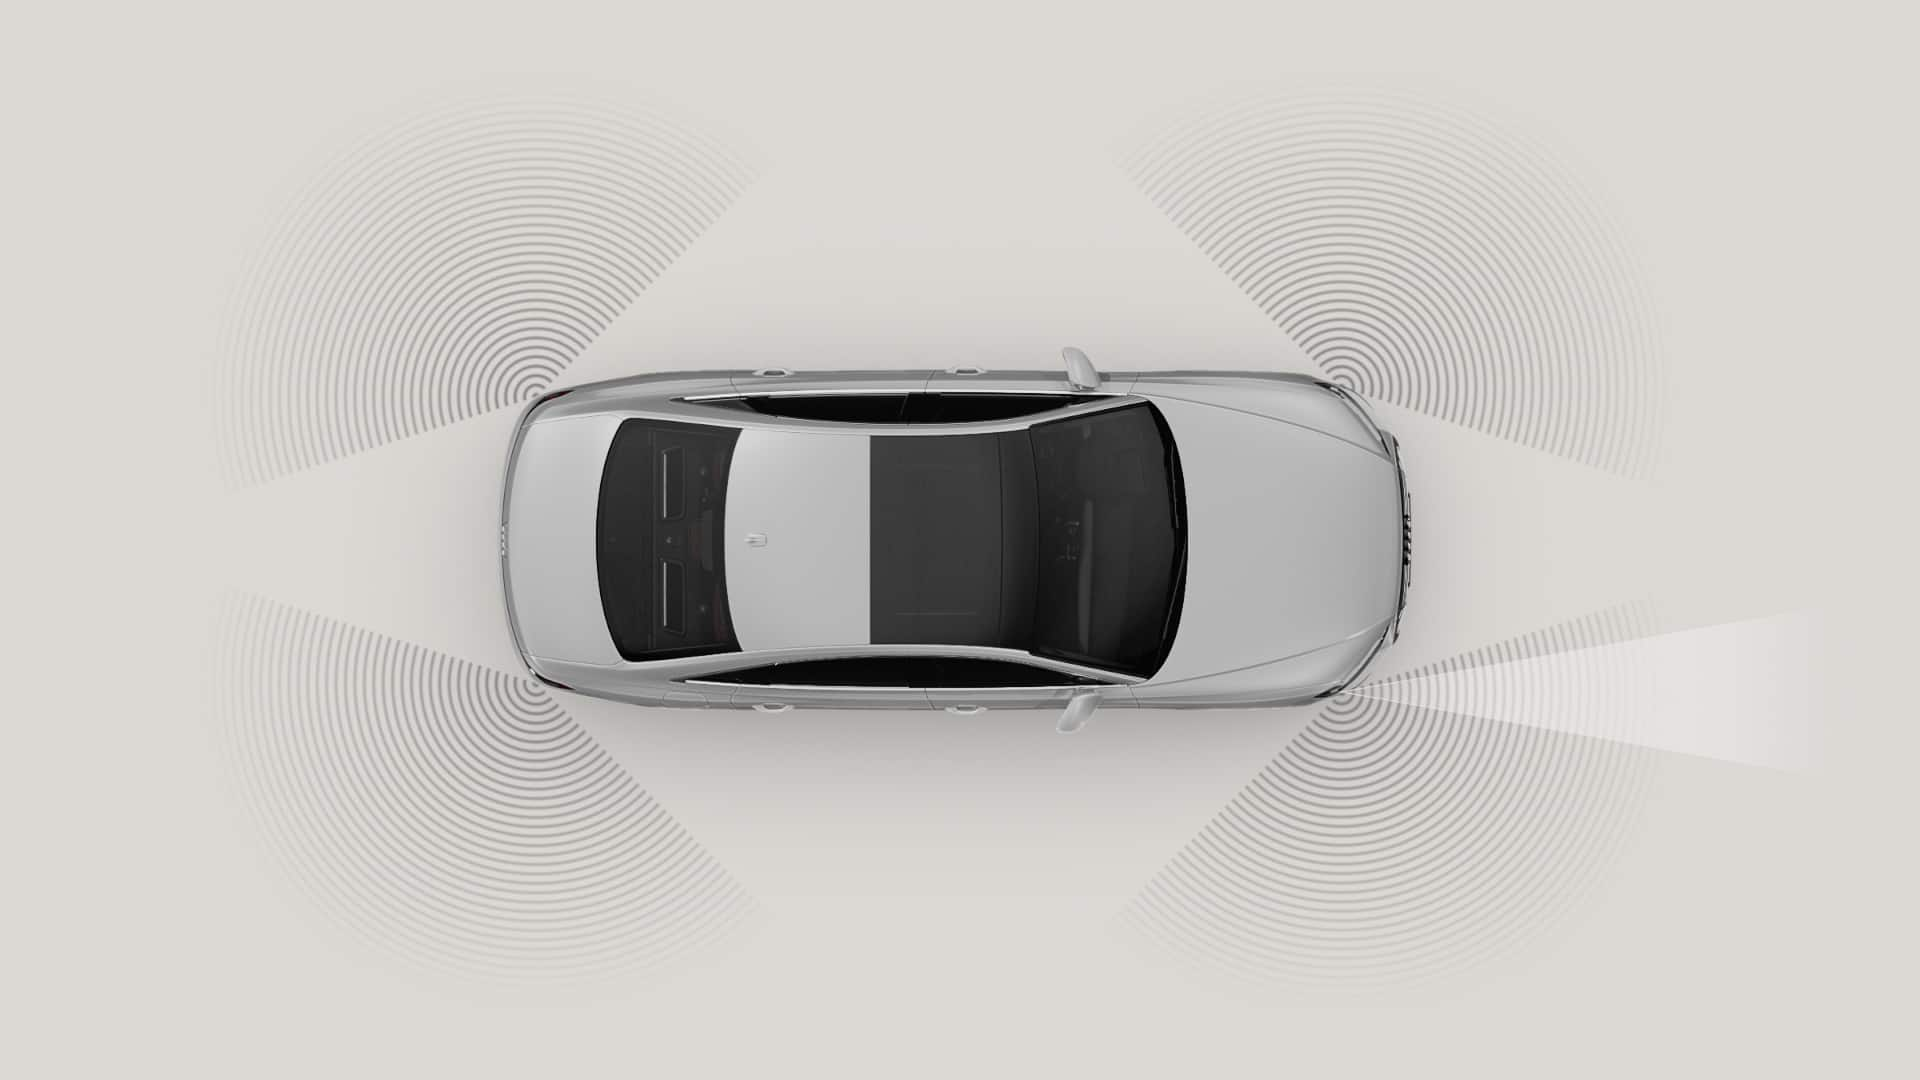 Intelligent assistance systems ensure comfort and safety in the new Audi A8 L.